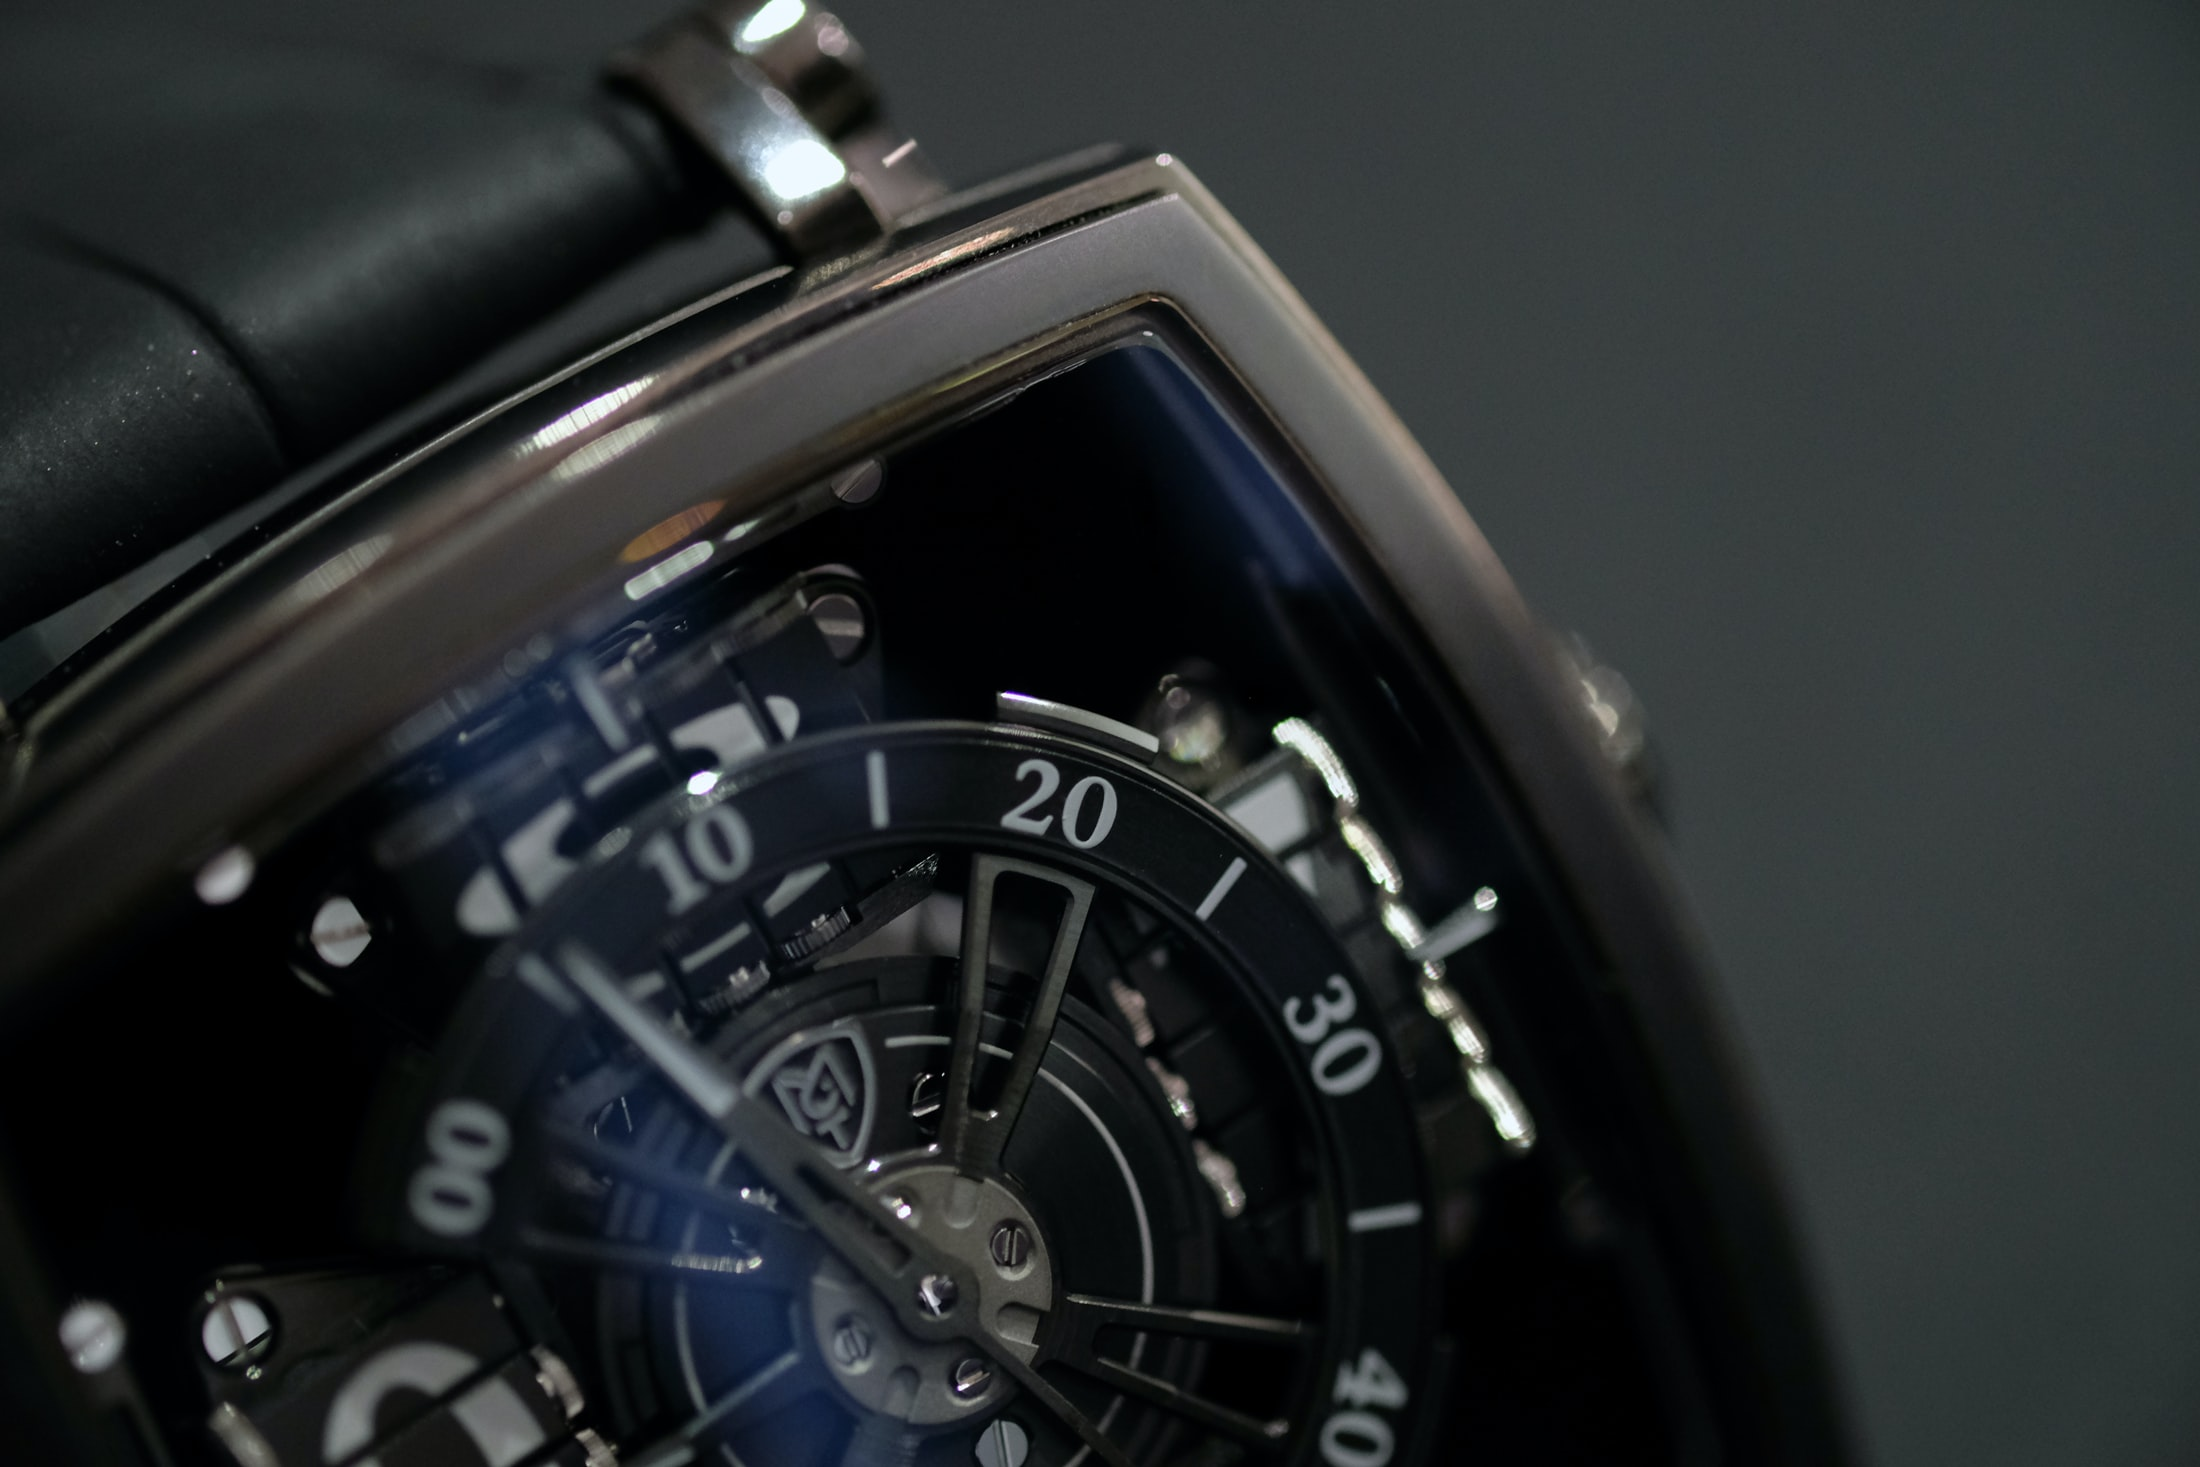 vantablack mct watch sequential one Hands-On: The MCT Sequential One 110 Evo Vantablack, The Darkest Watch Ever Made Hands-On: The MCT Sequential One 110 Evo Vantablack, The Darkest Watch Ever Made vantablack 03